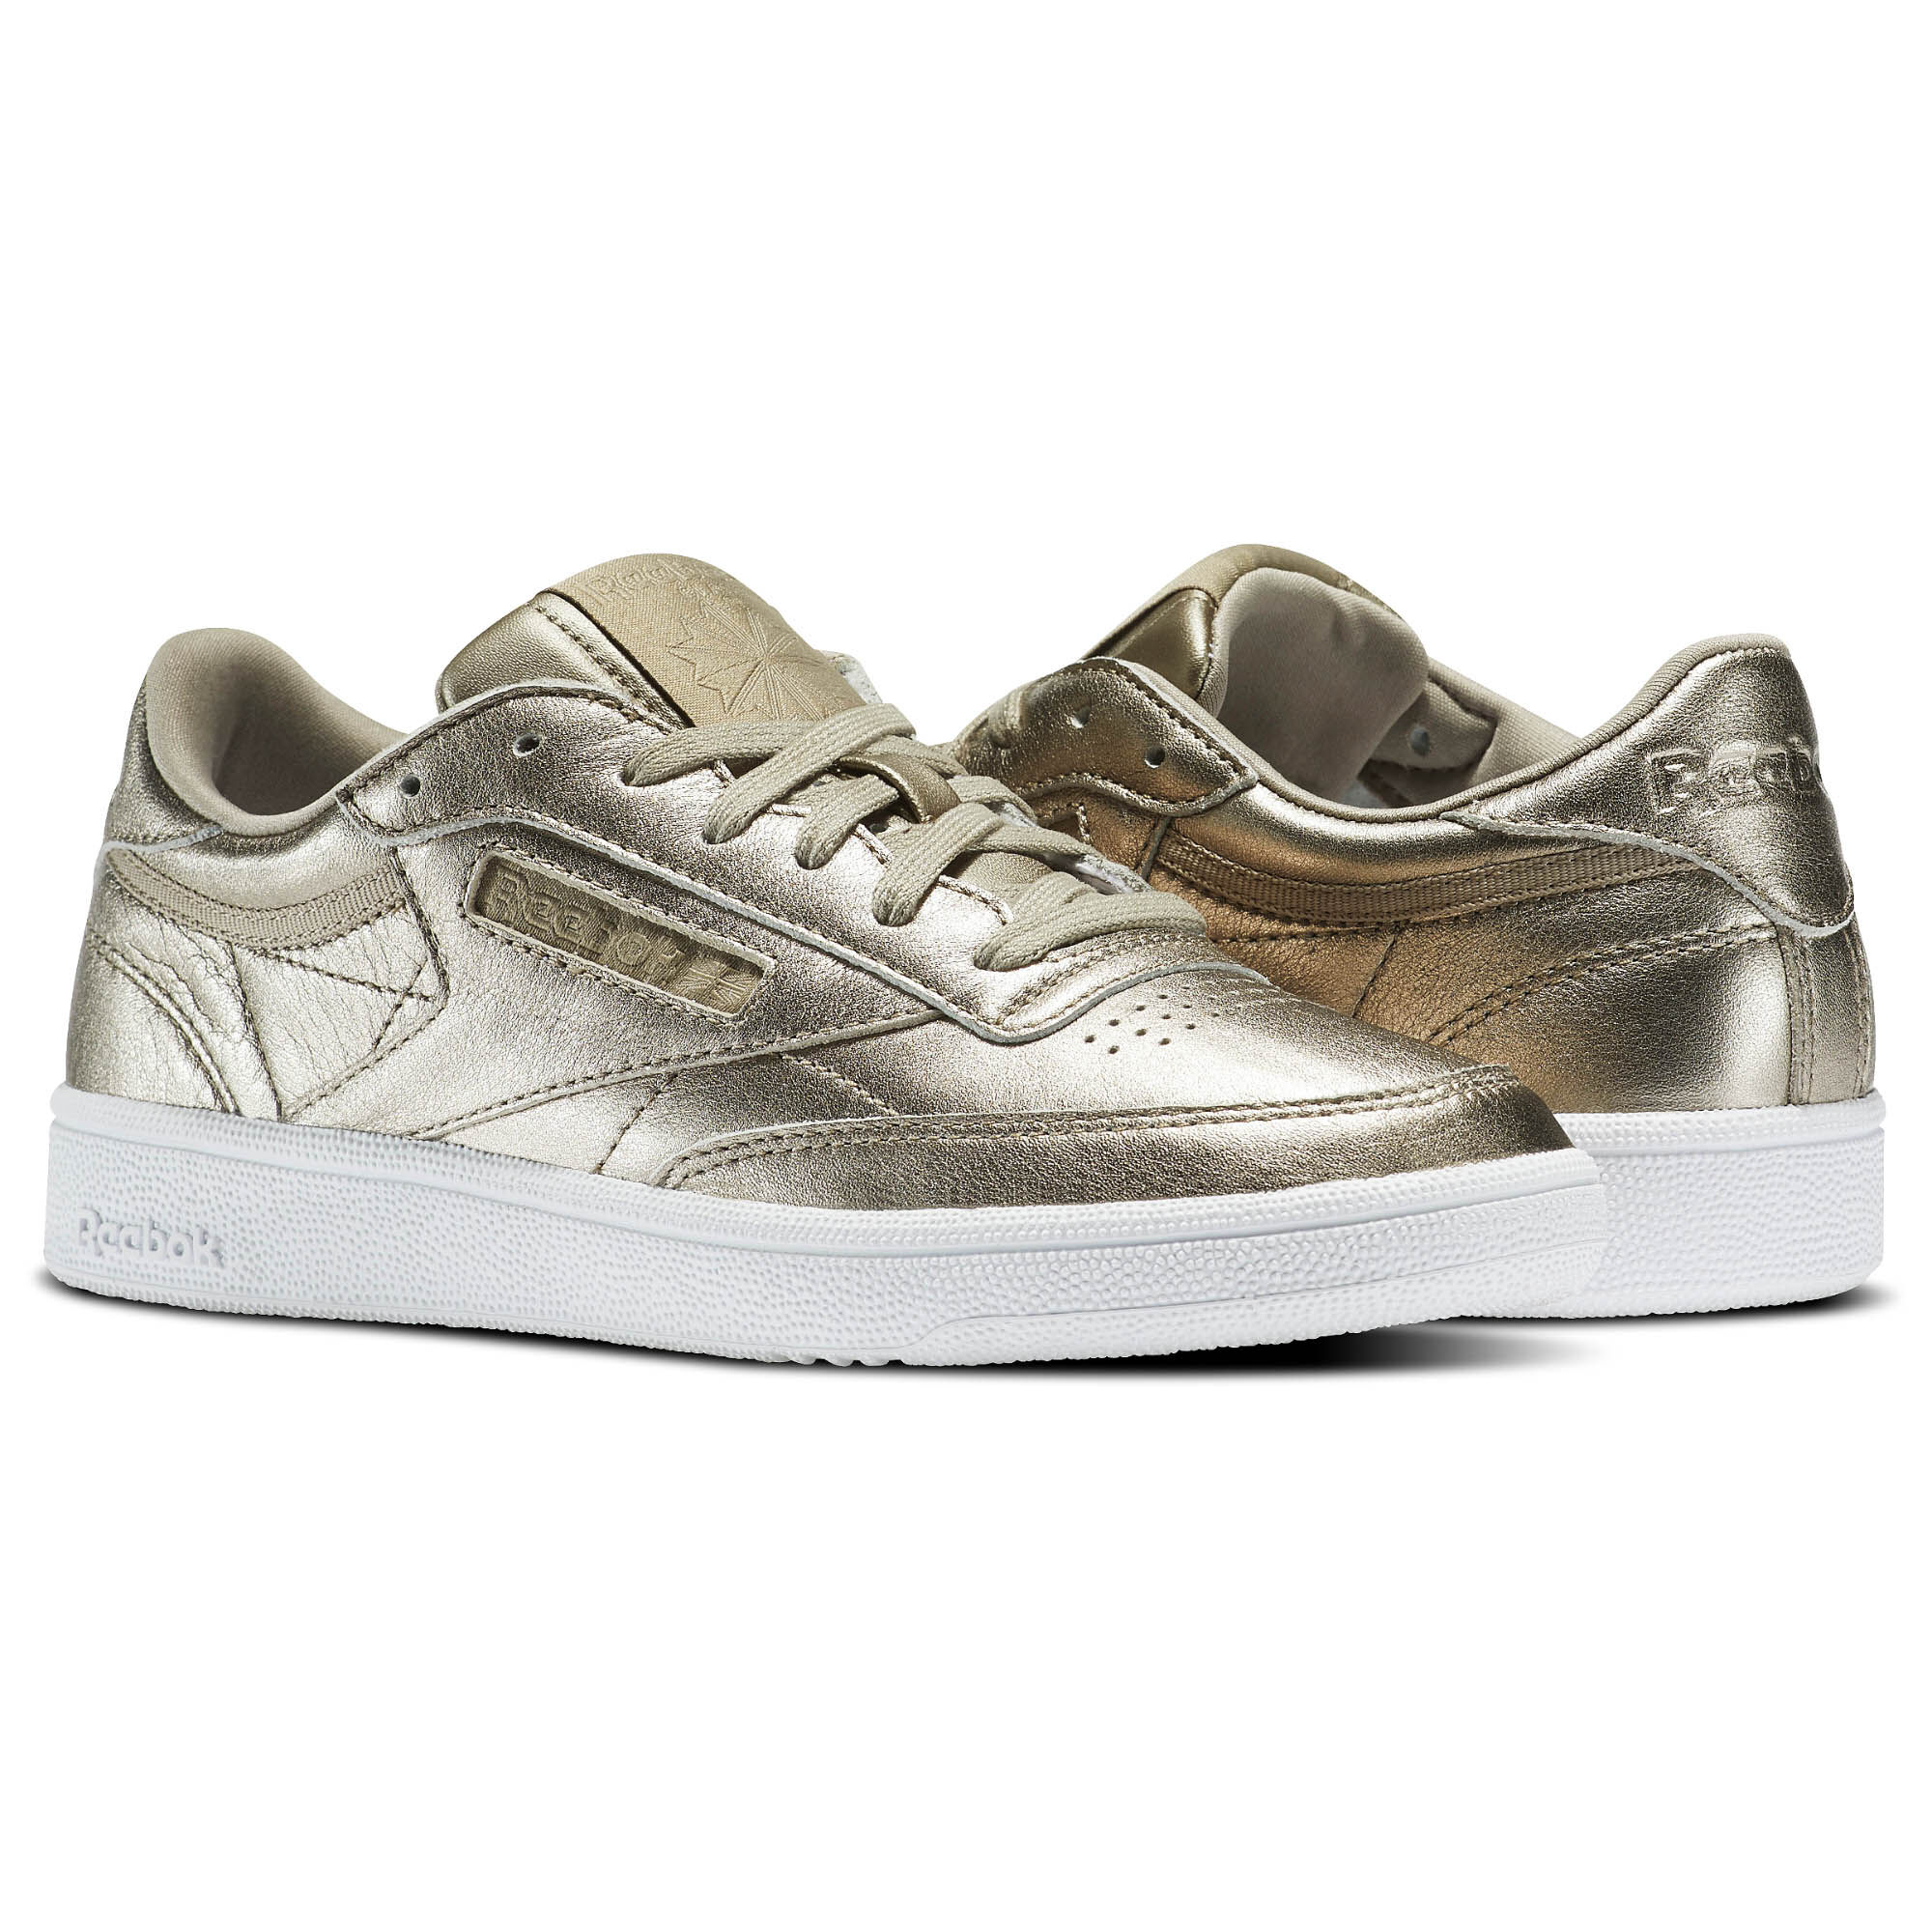 Reebok Sport Chaussures Classic Leather W Melted Metals Or Reebok Sport soldes